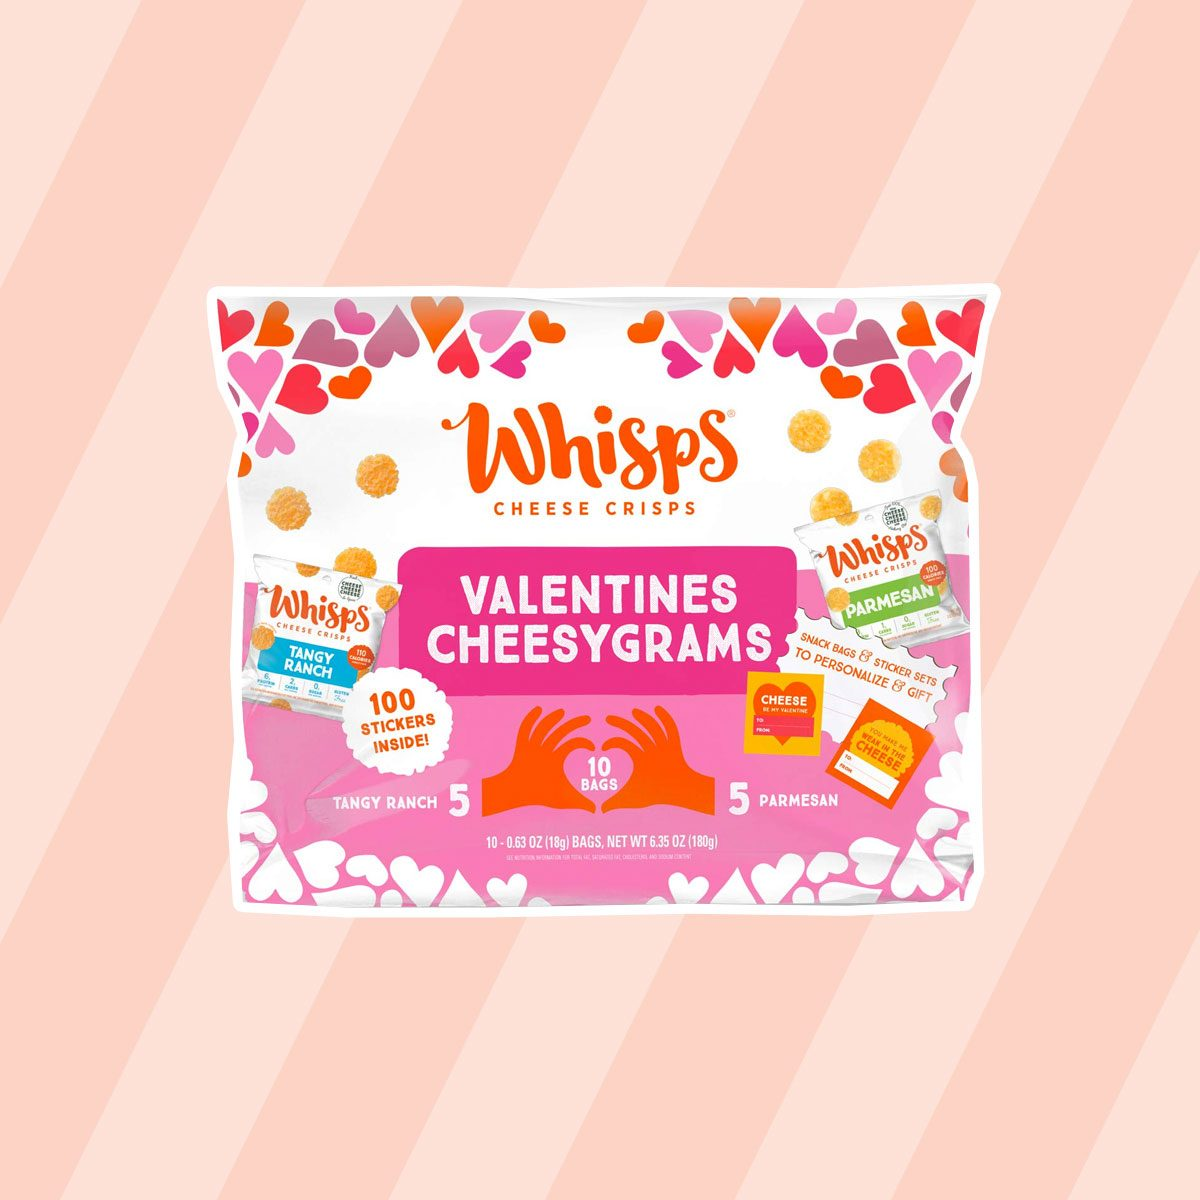 edible valentine's gifts Whisps Valentines Cheesygrams